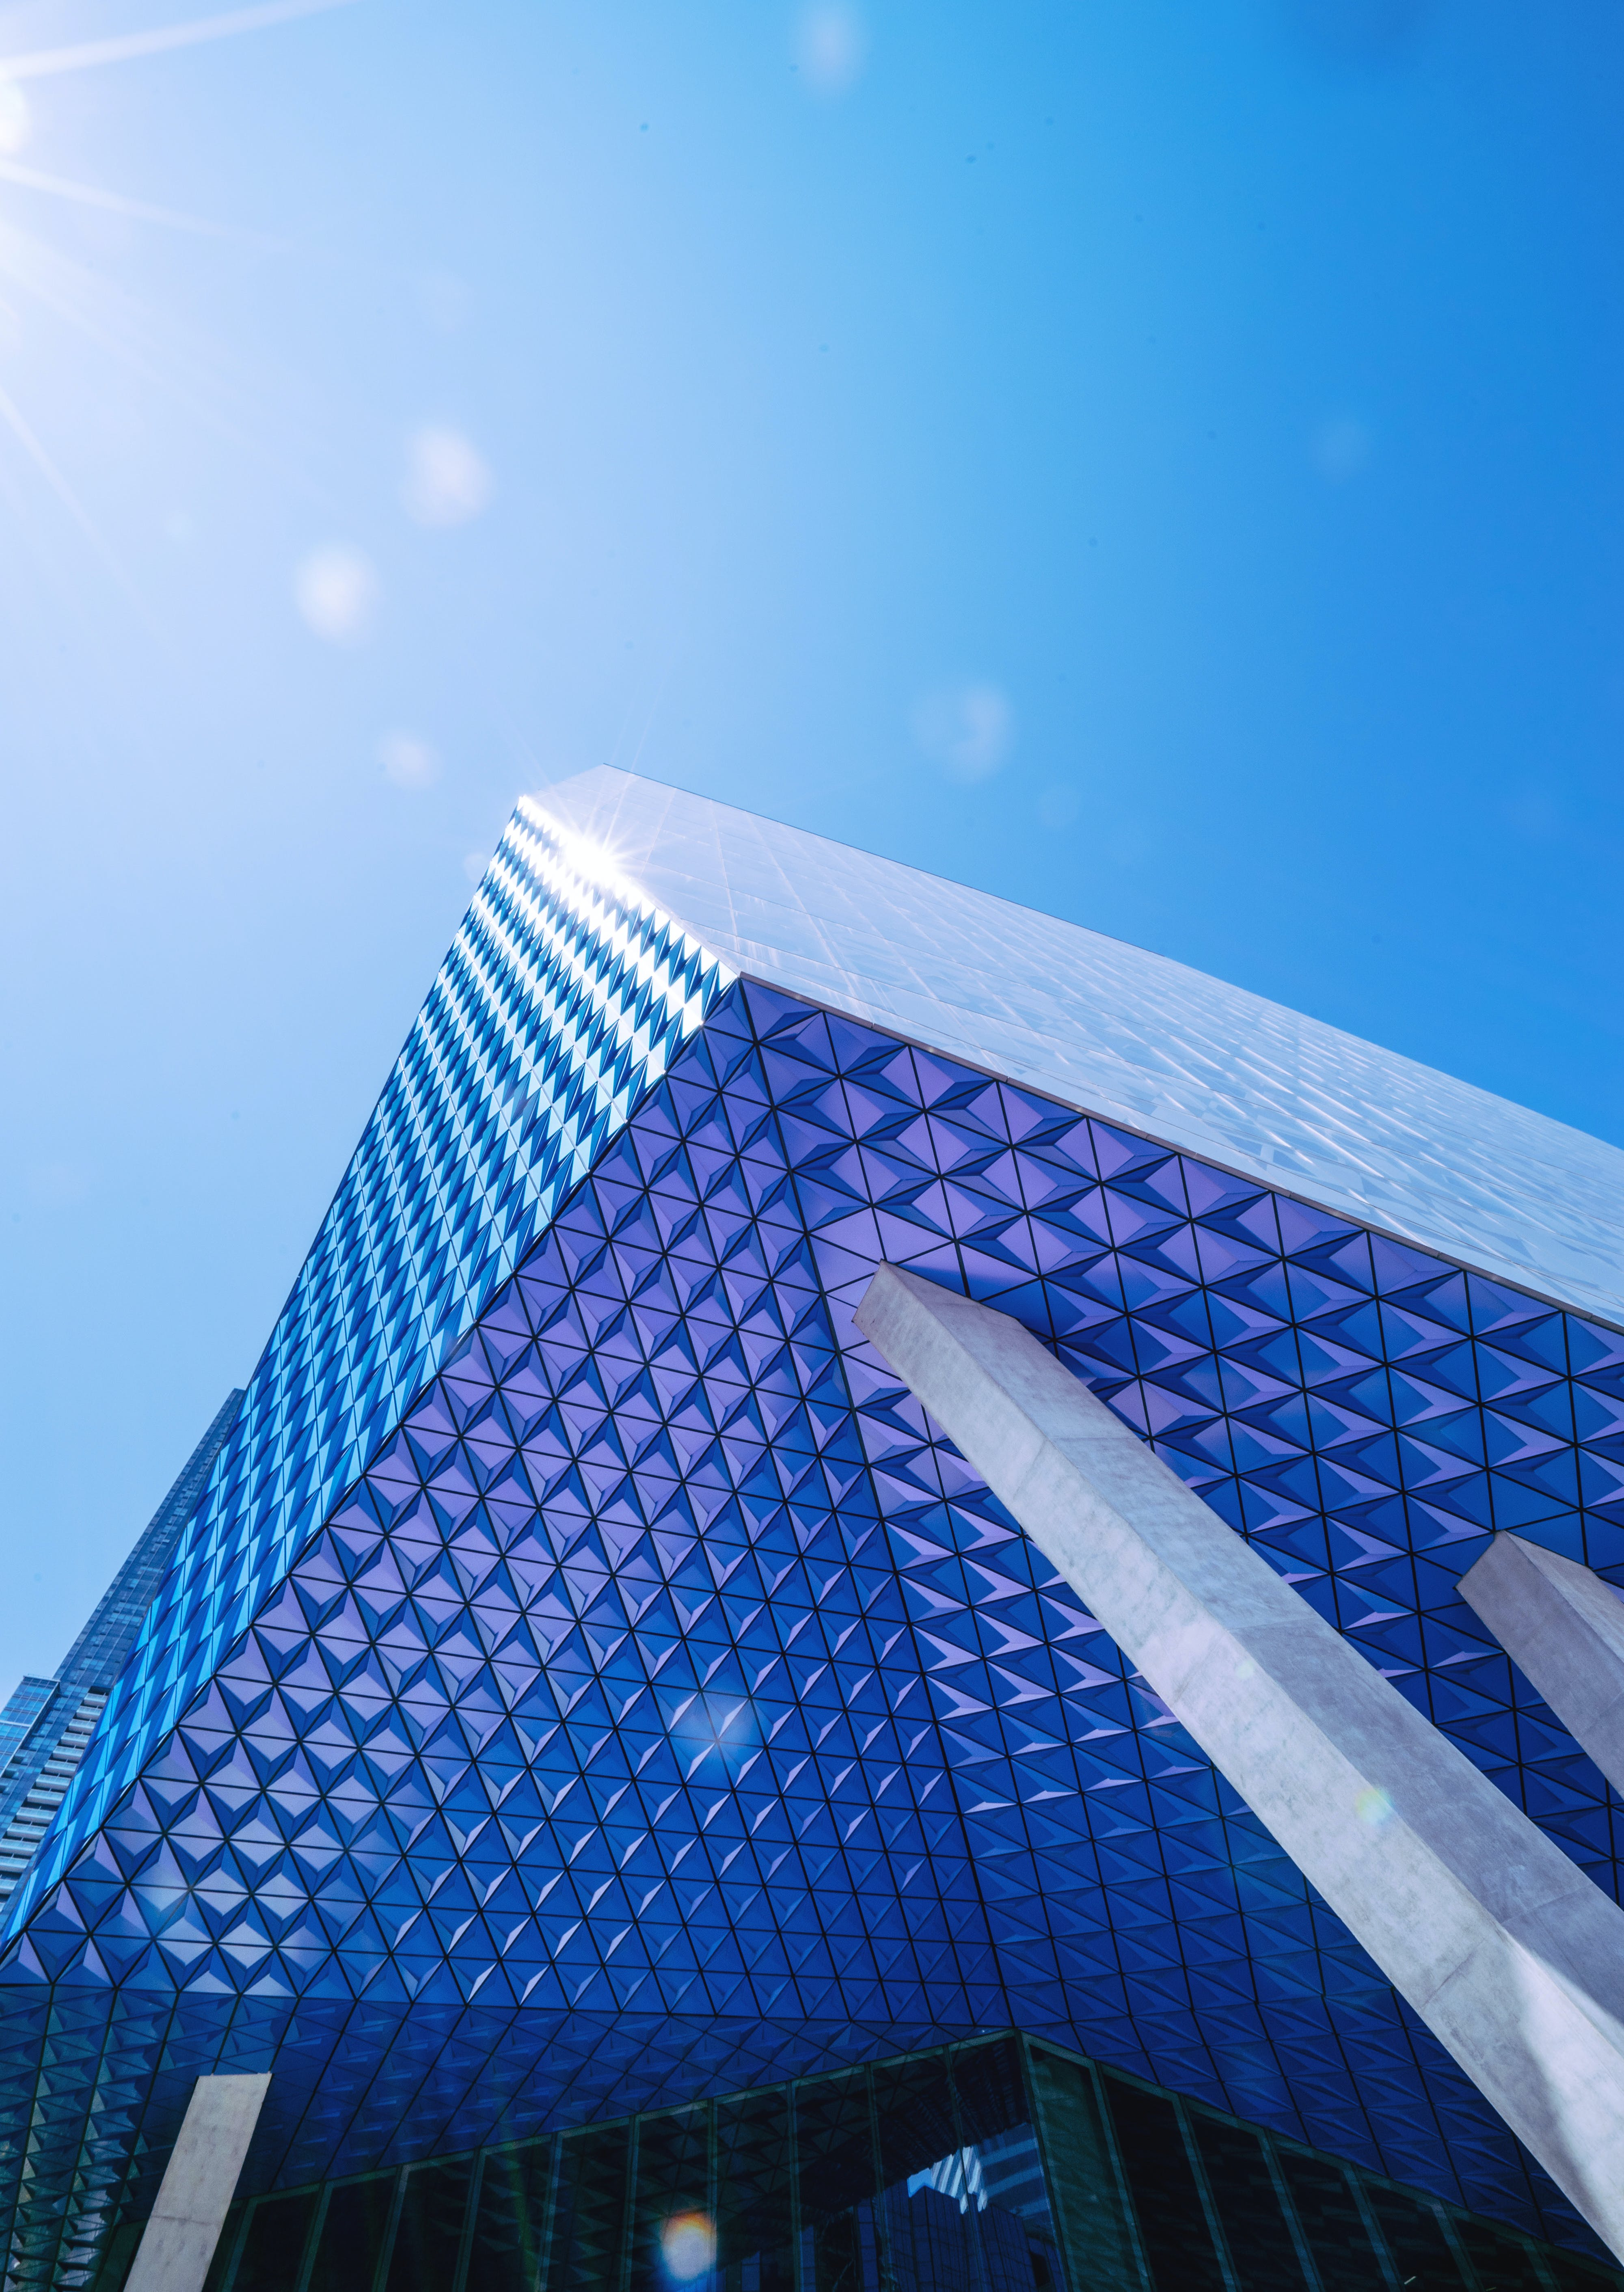 Architectural Photography of Blue Building